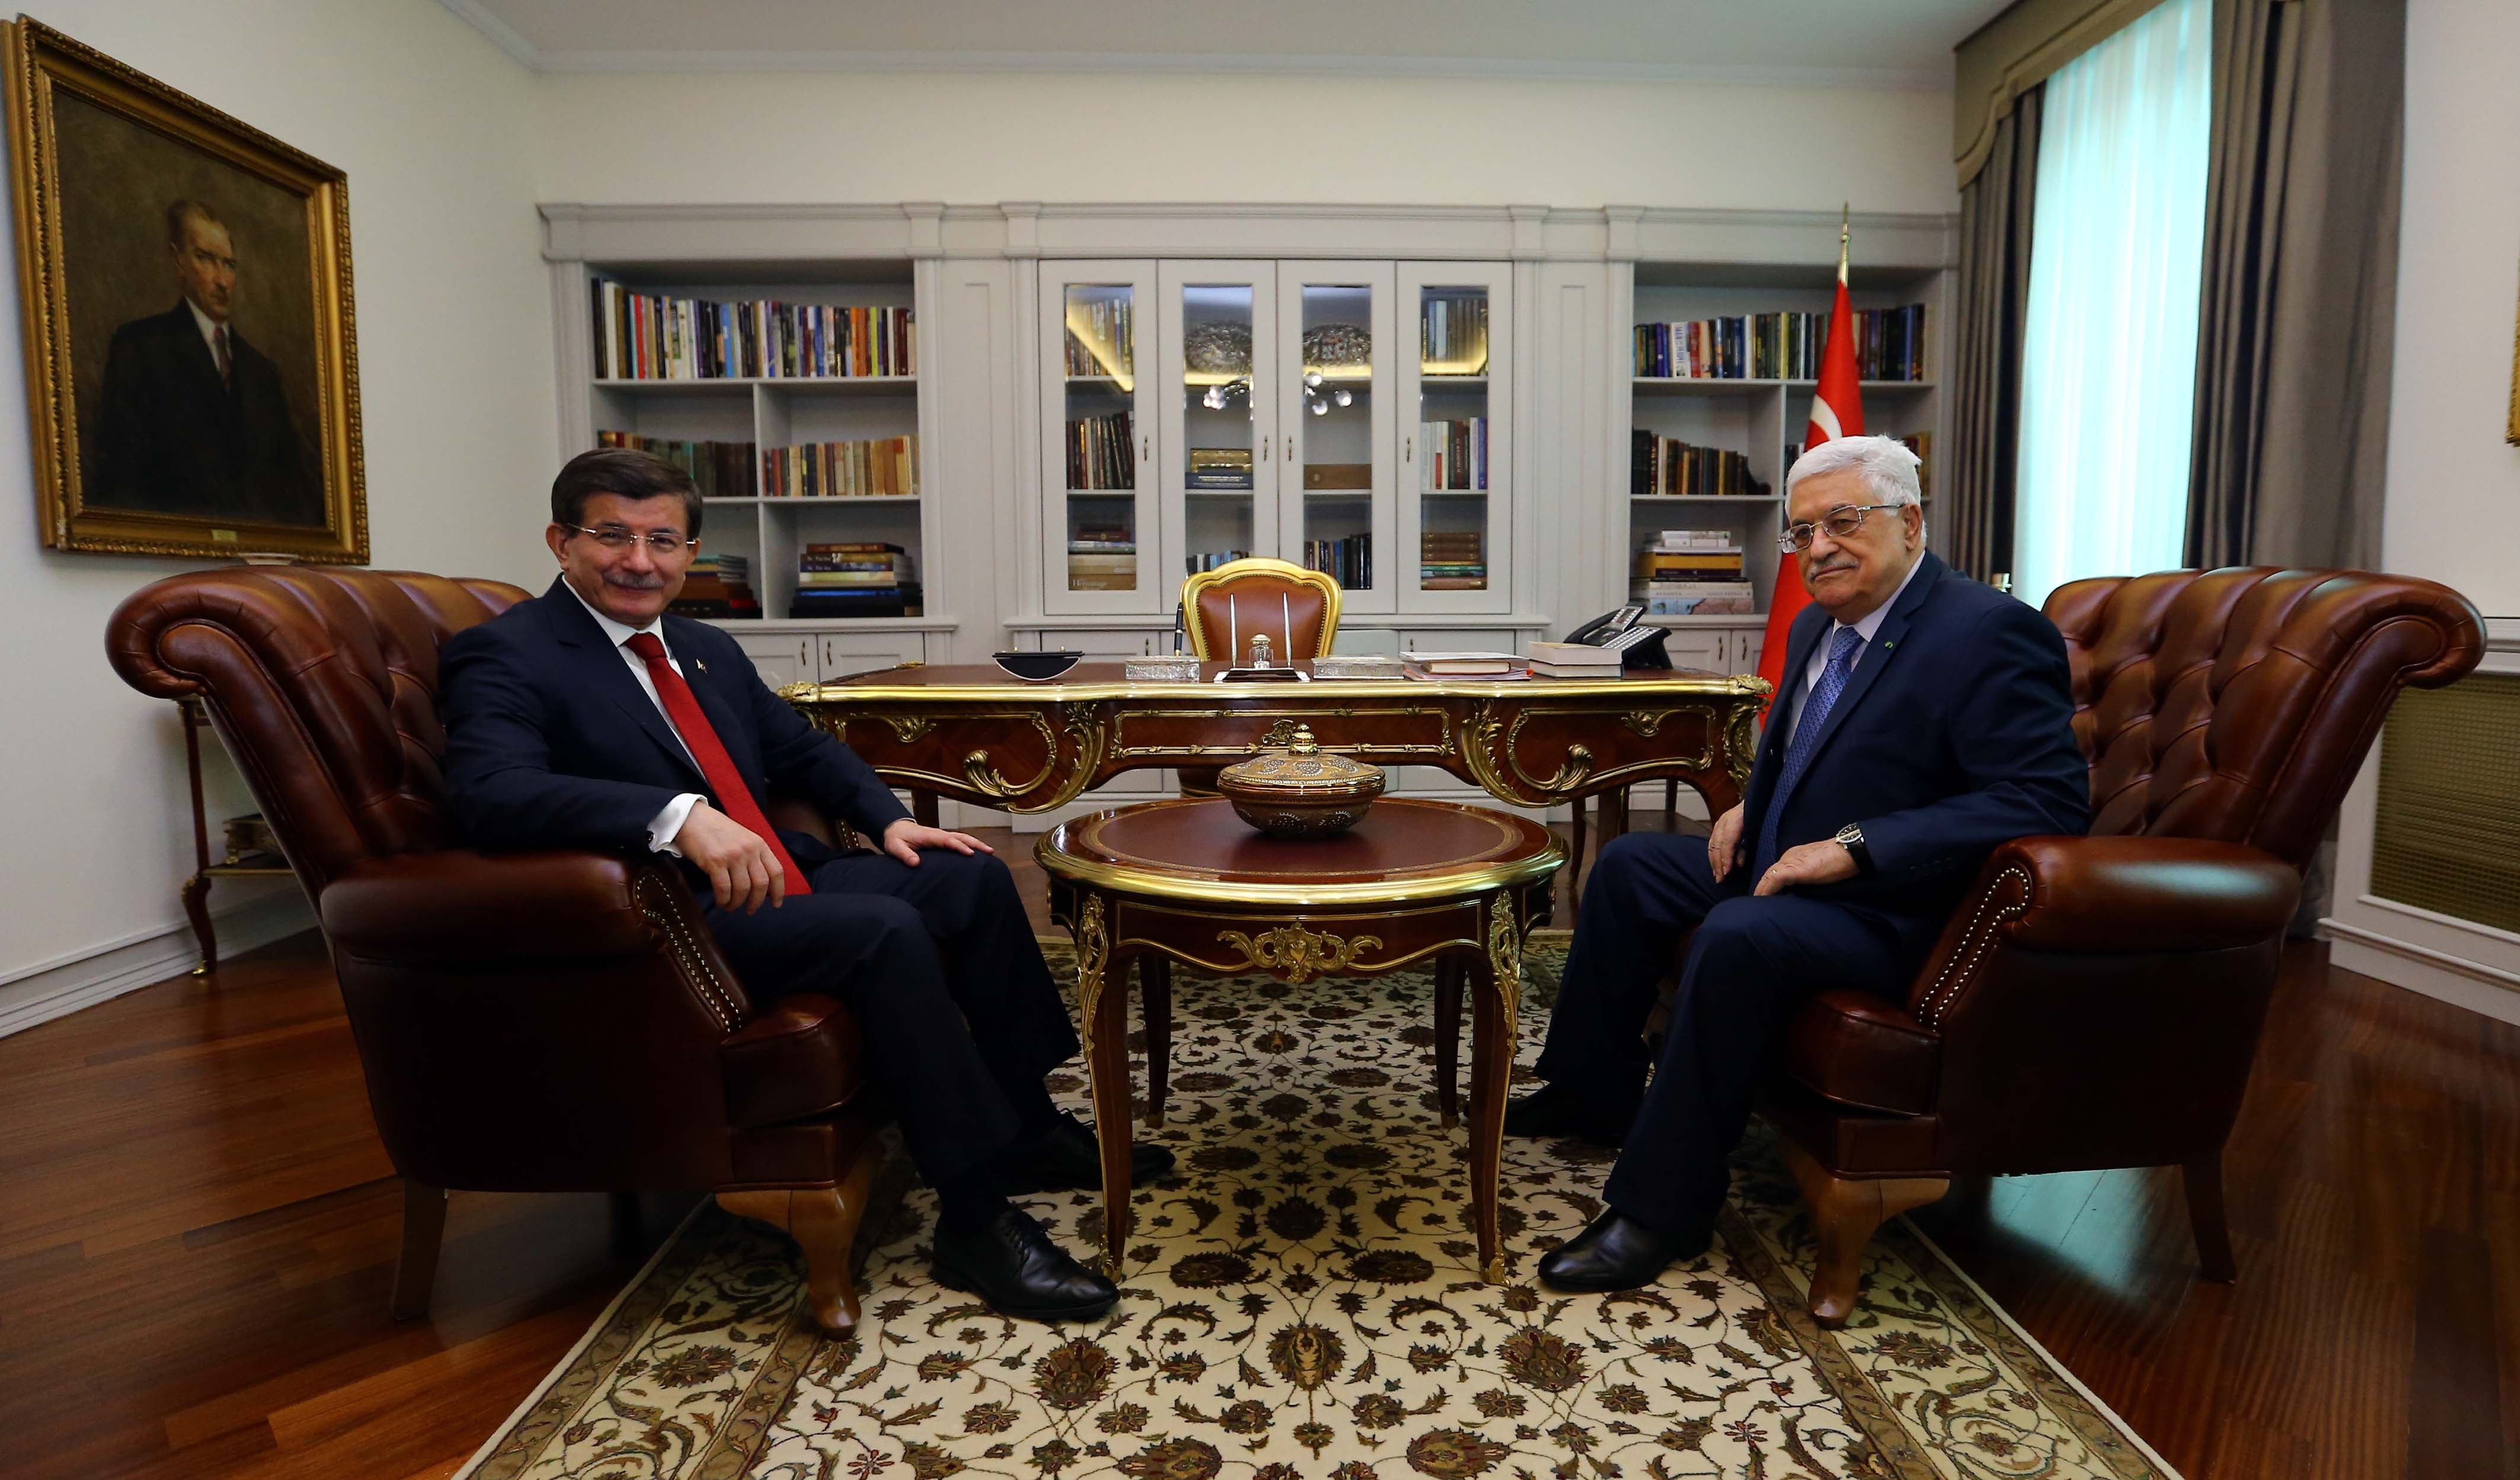 turkey home office. Palestinian President Mahmoud Abbas (R) Meeting With Turkish Prime Minister Ahmet Davutoglu (L Turkey Home Office U